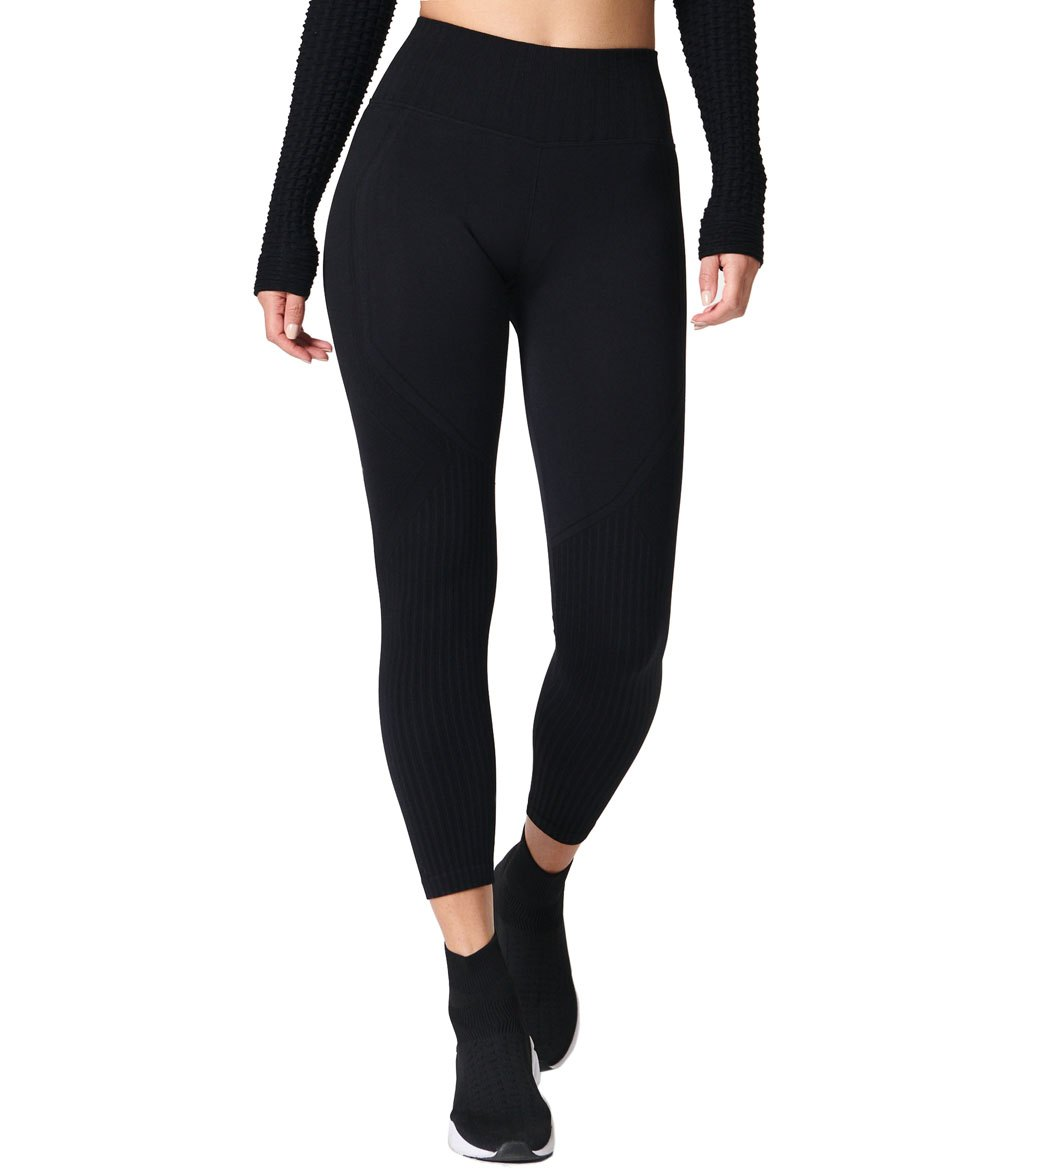 NUX Seamless Elevate Yoga Leggings - Black Spandex